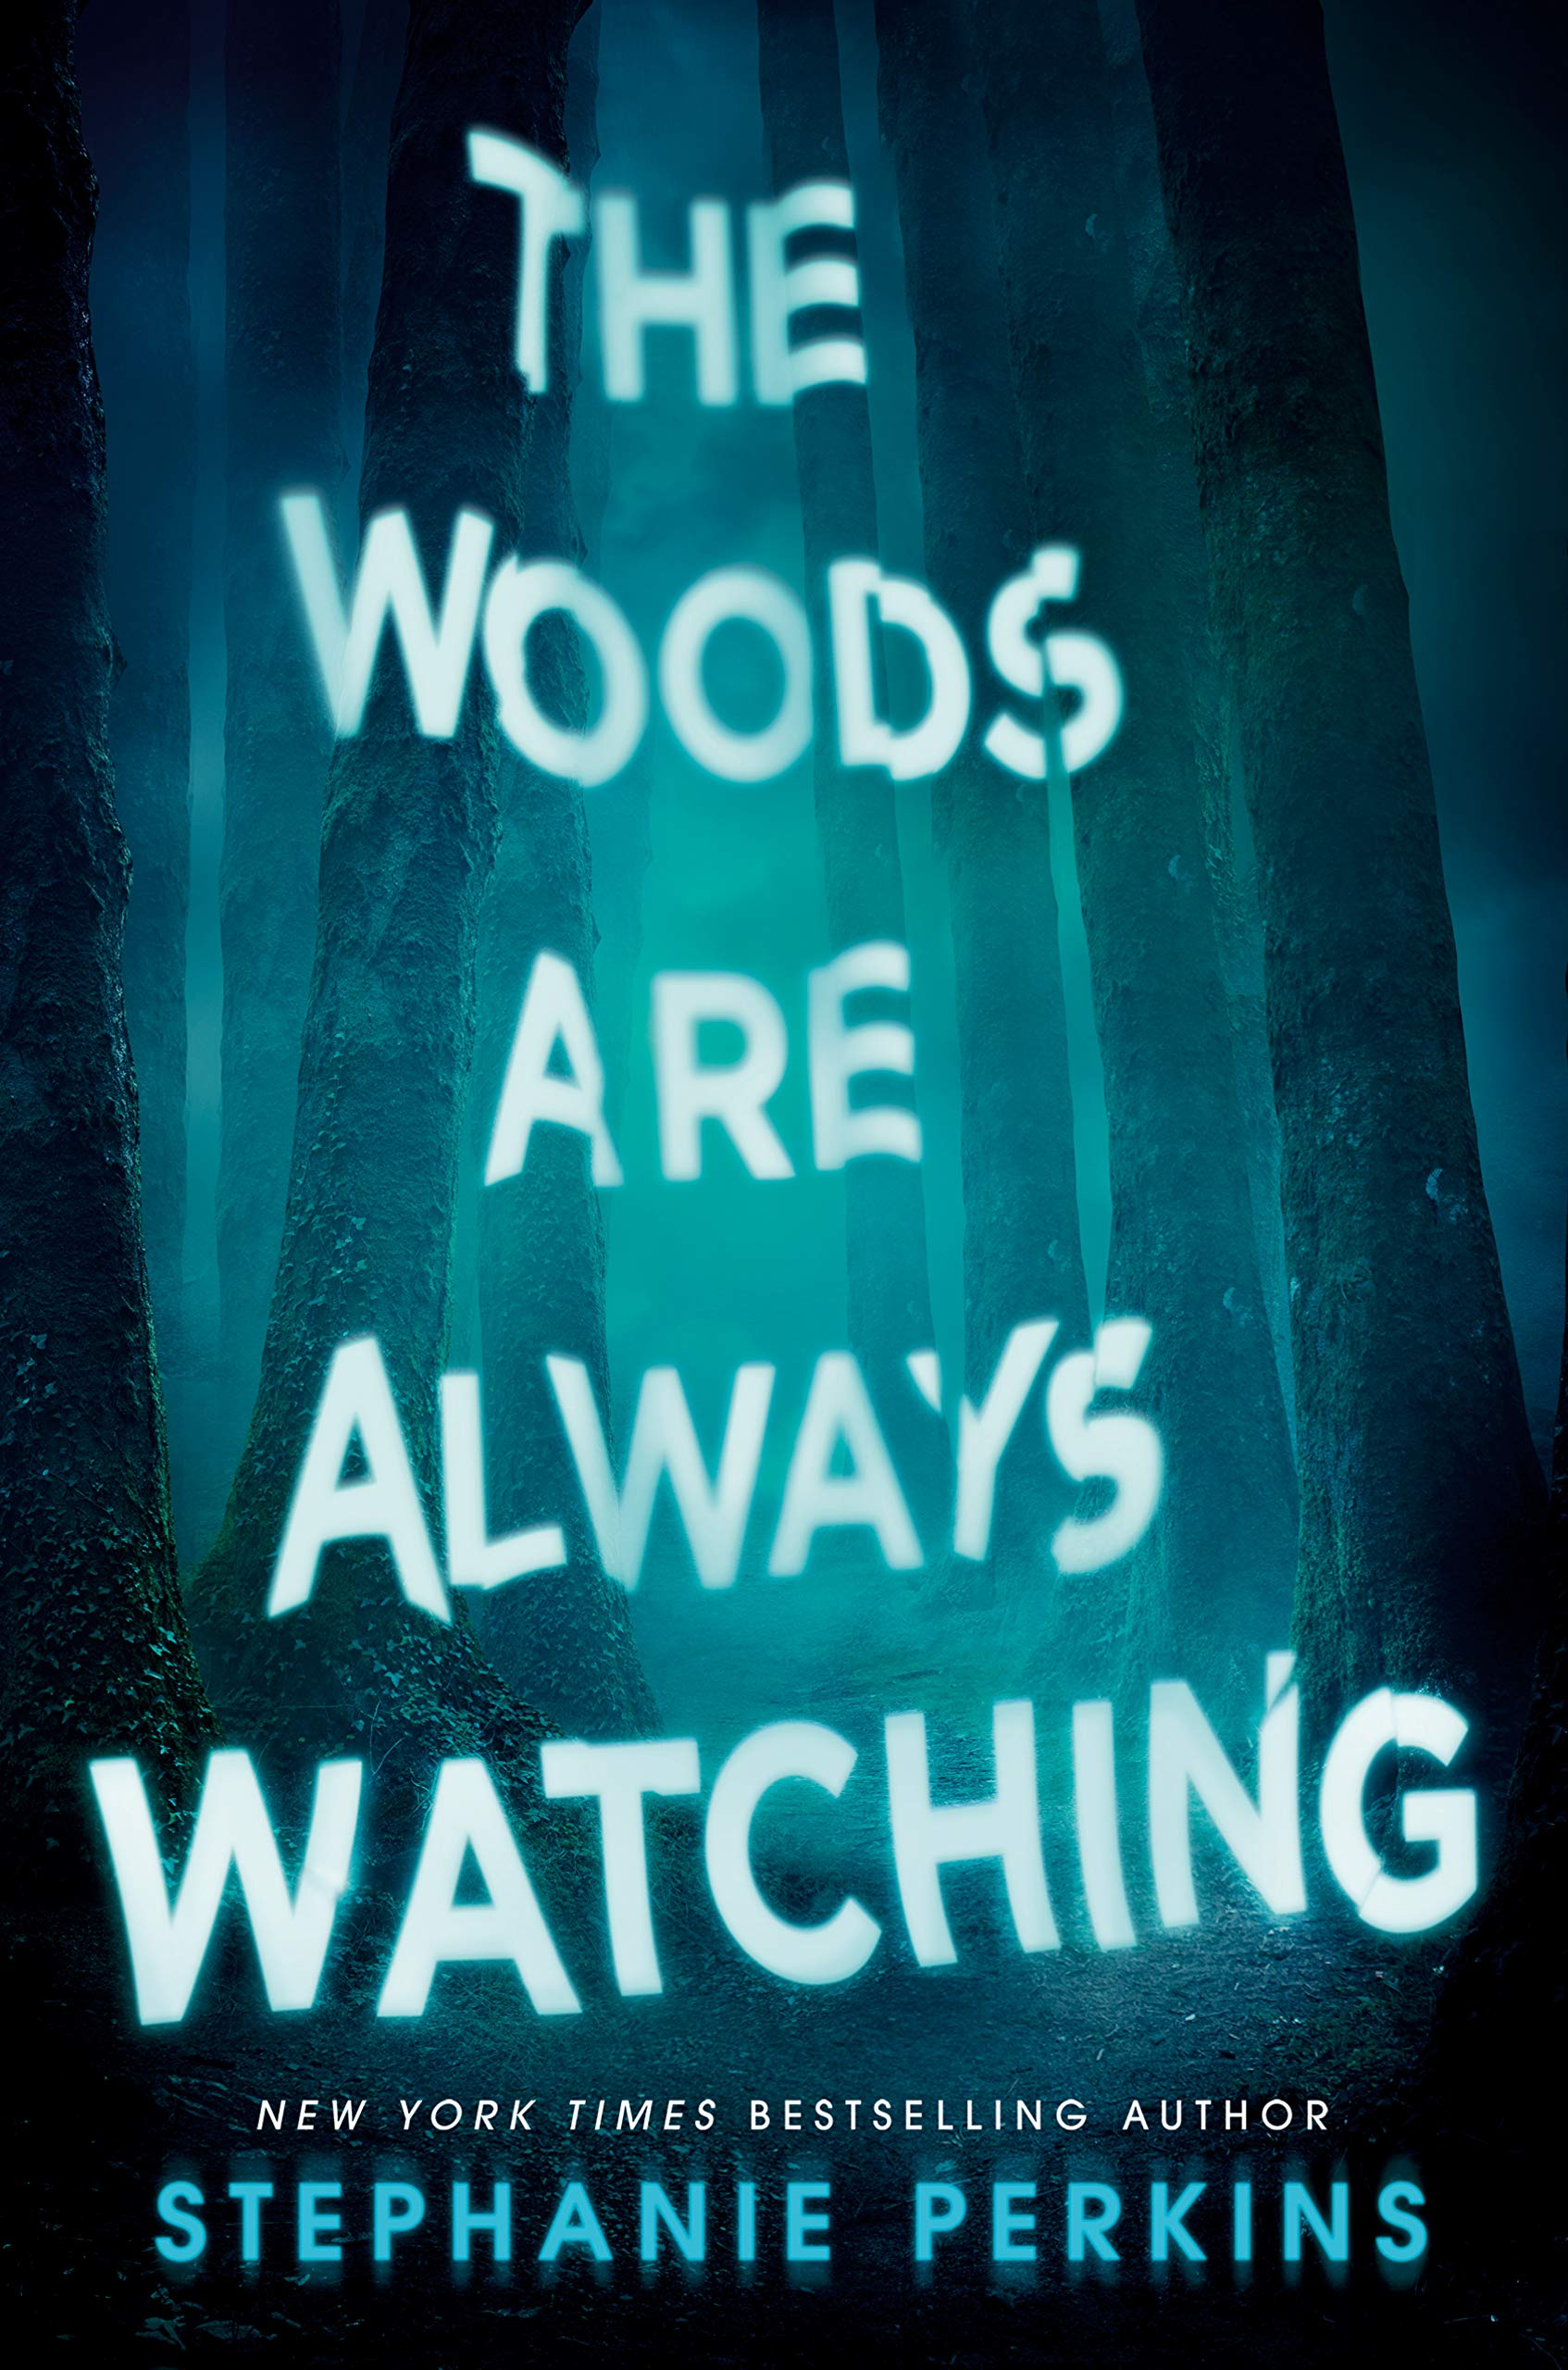 The Woods Are Always Watching: Perkins, Stephanie: 9780525426028: Books -  Amazon.ca